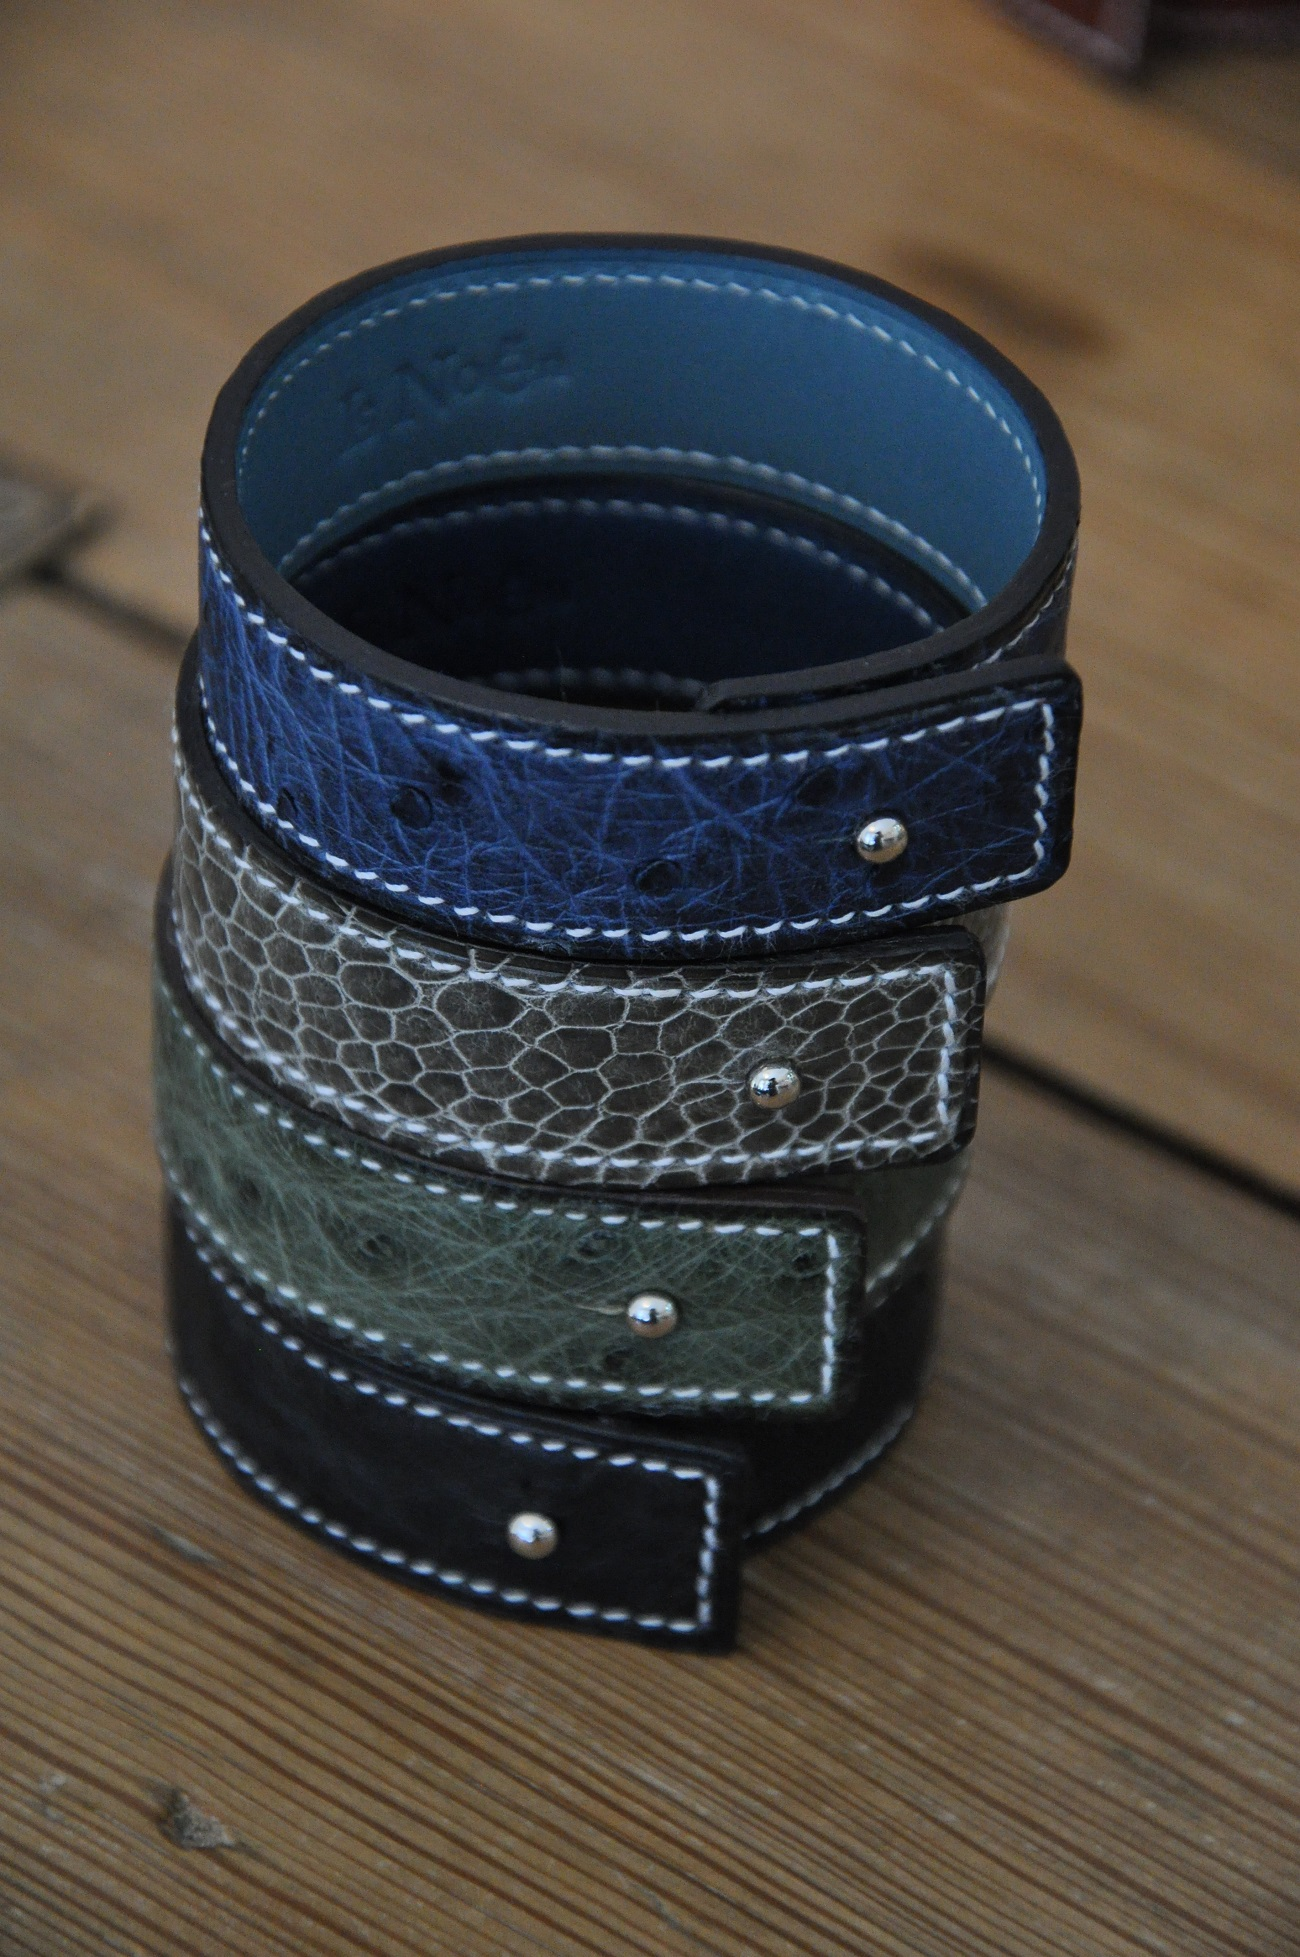 Bracelets with precious leathers for woman or man. Made in alligator, ostrich, lizard by LE NOËN. France